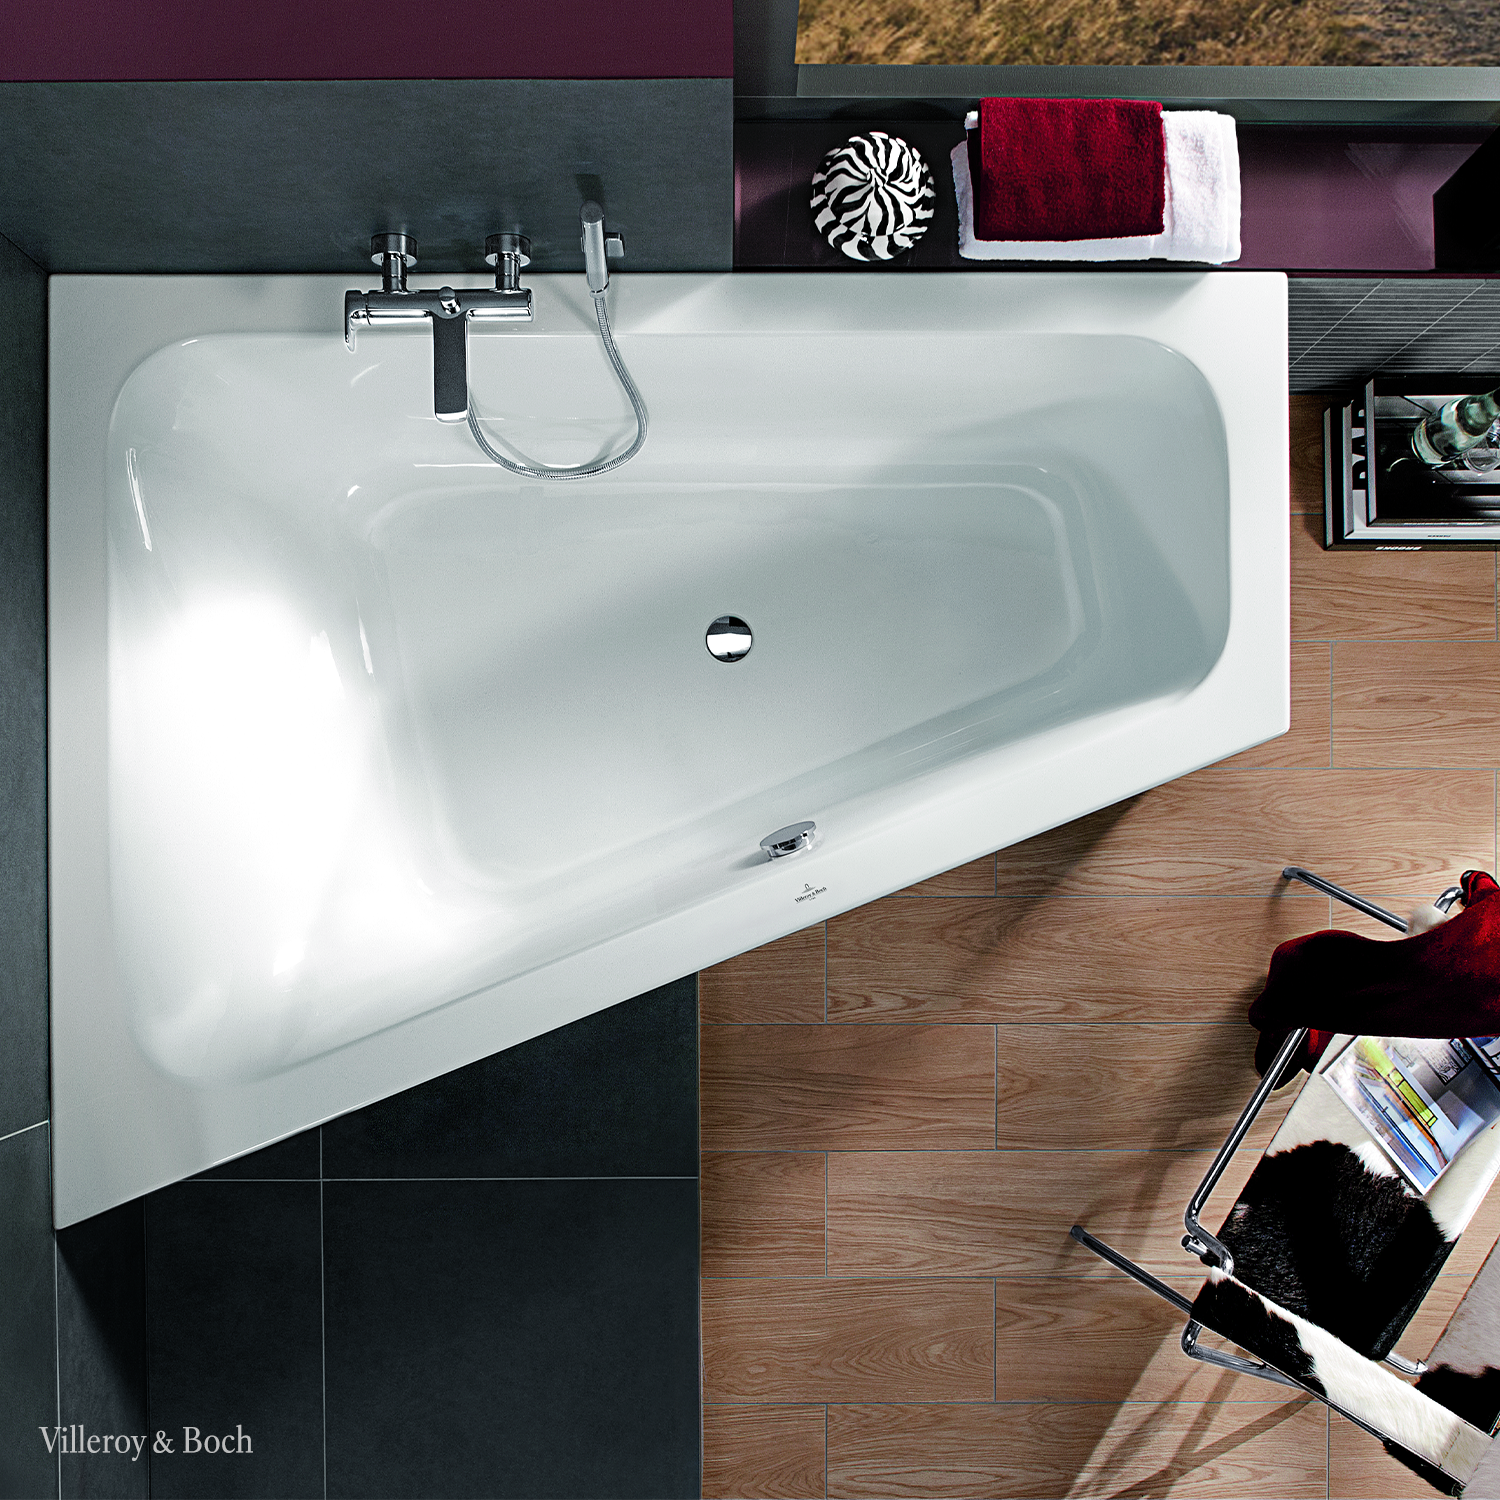 The Right Bathtub For Space Savers And Design Lovers In 2020 Badezimmer Klein Eckbadewanne Kleines Bad Badewanne